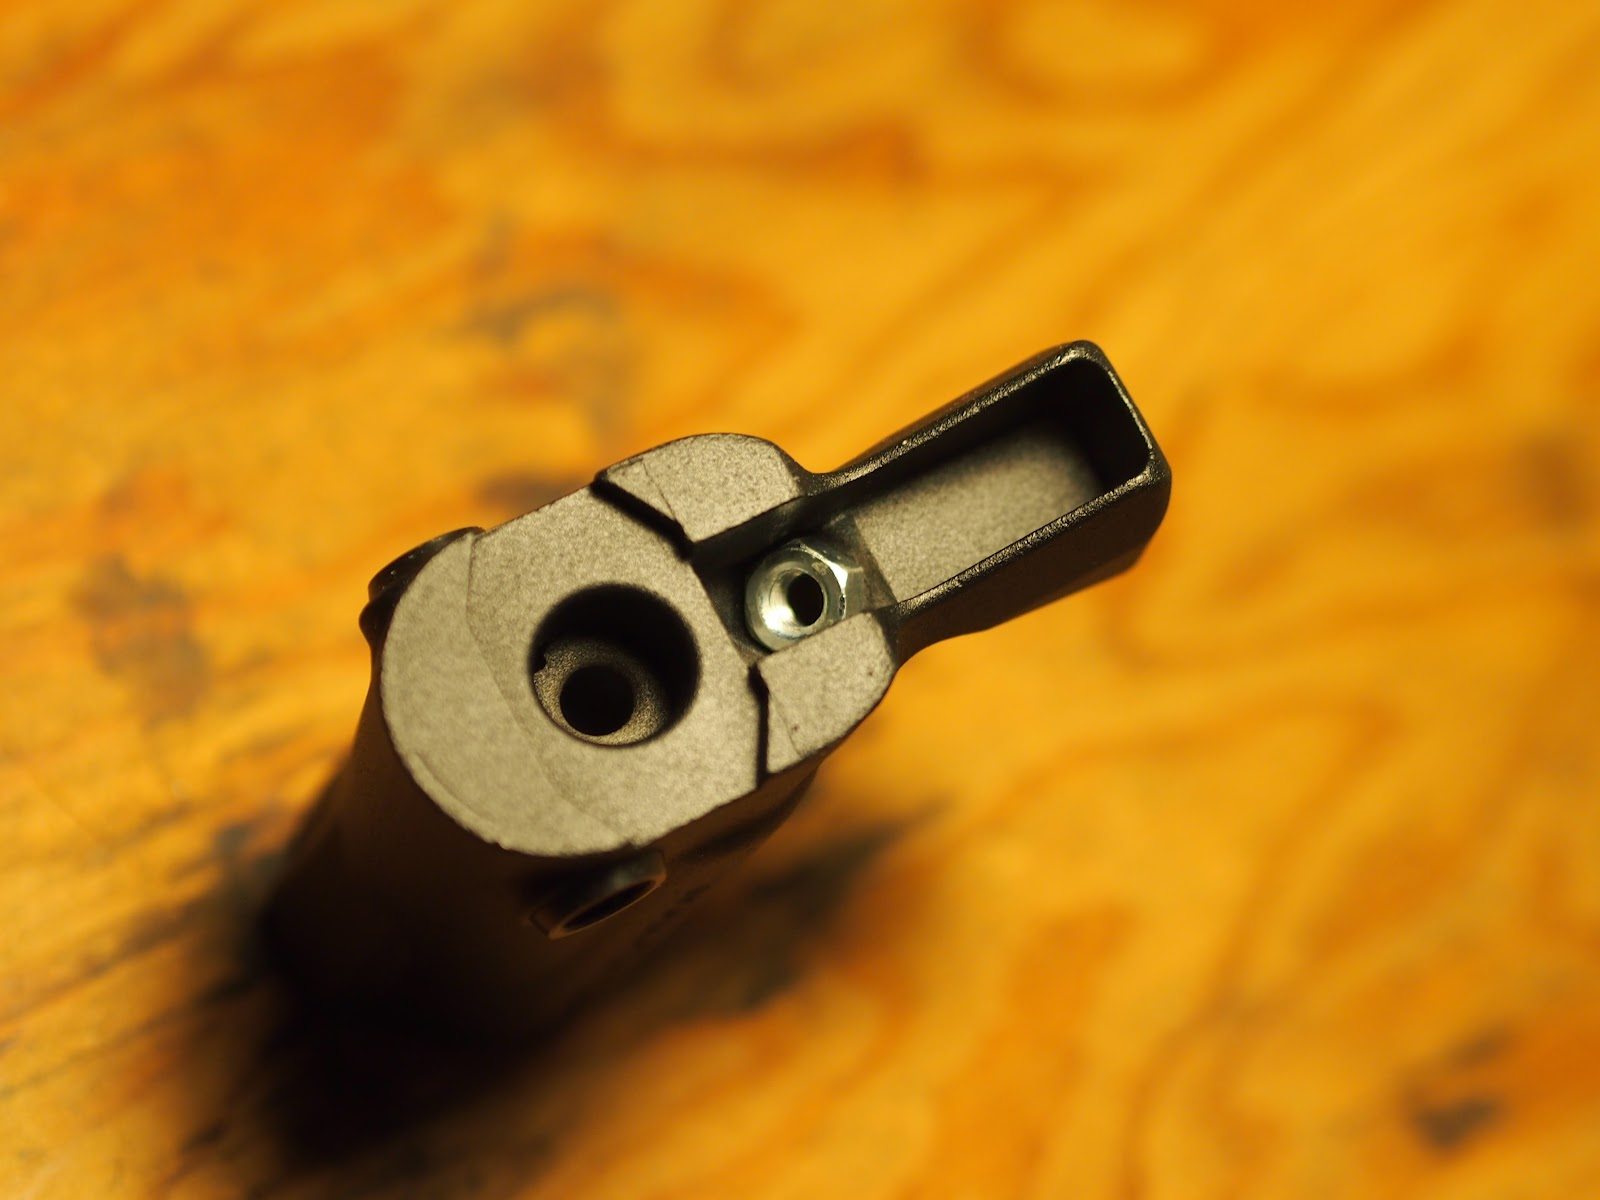 Mister Donut's Firearms Blog: Dominion Arms Grizzly 8 5